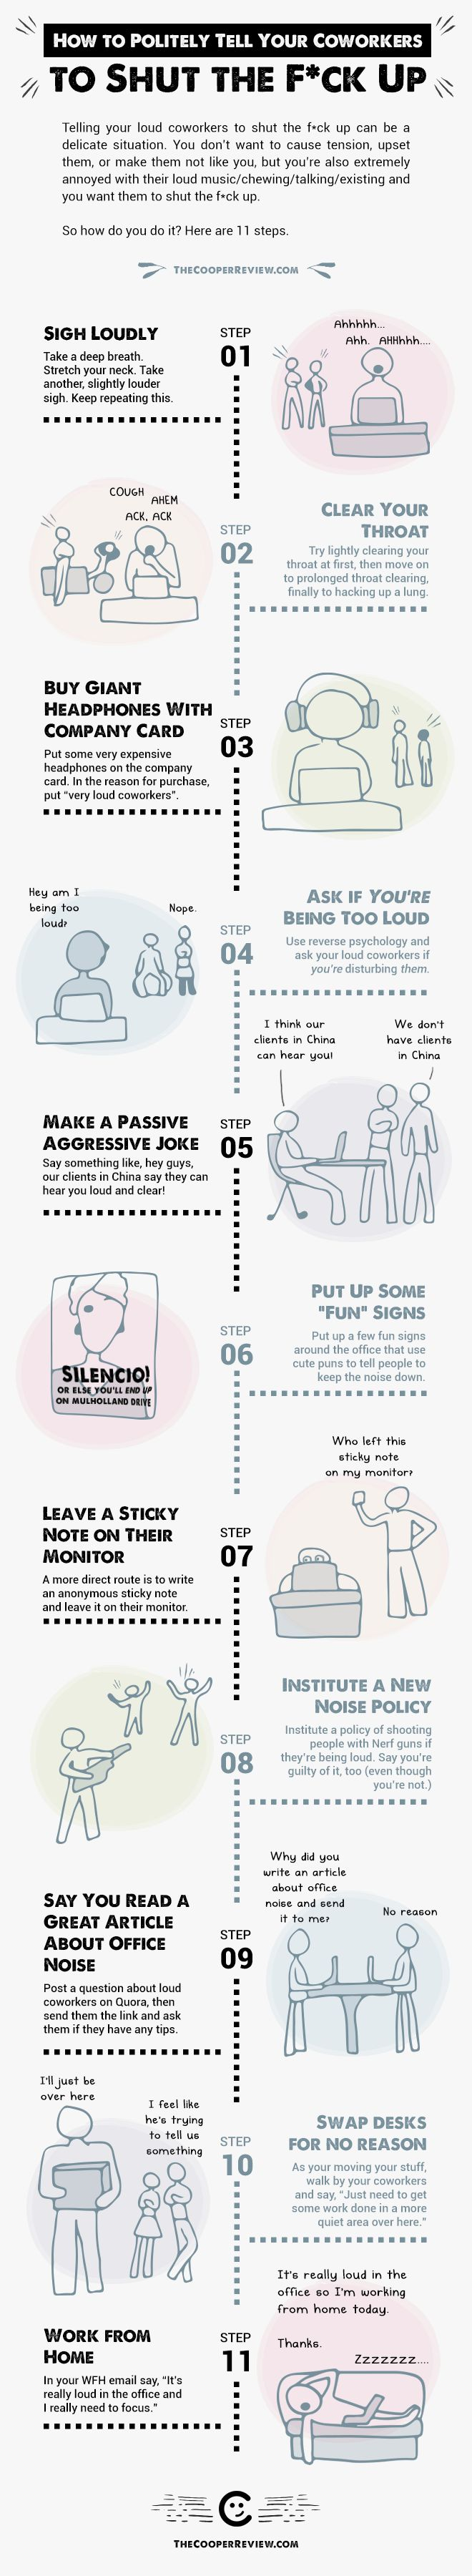 11 Tongue-In-Cheek Ways To Politely Tell Your Coworkers To Shut Up